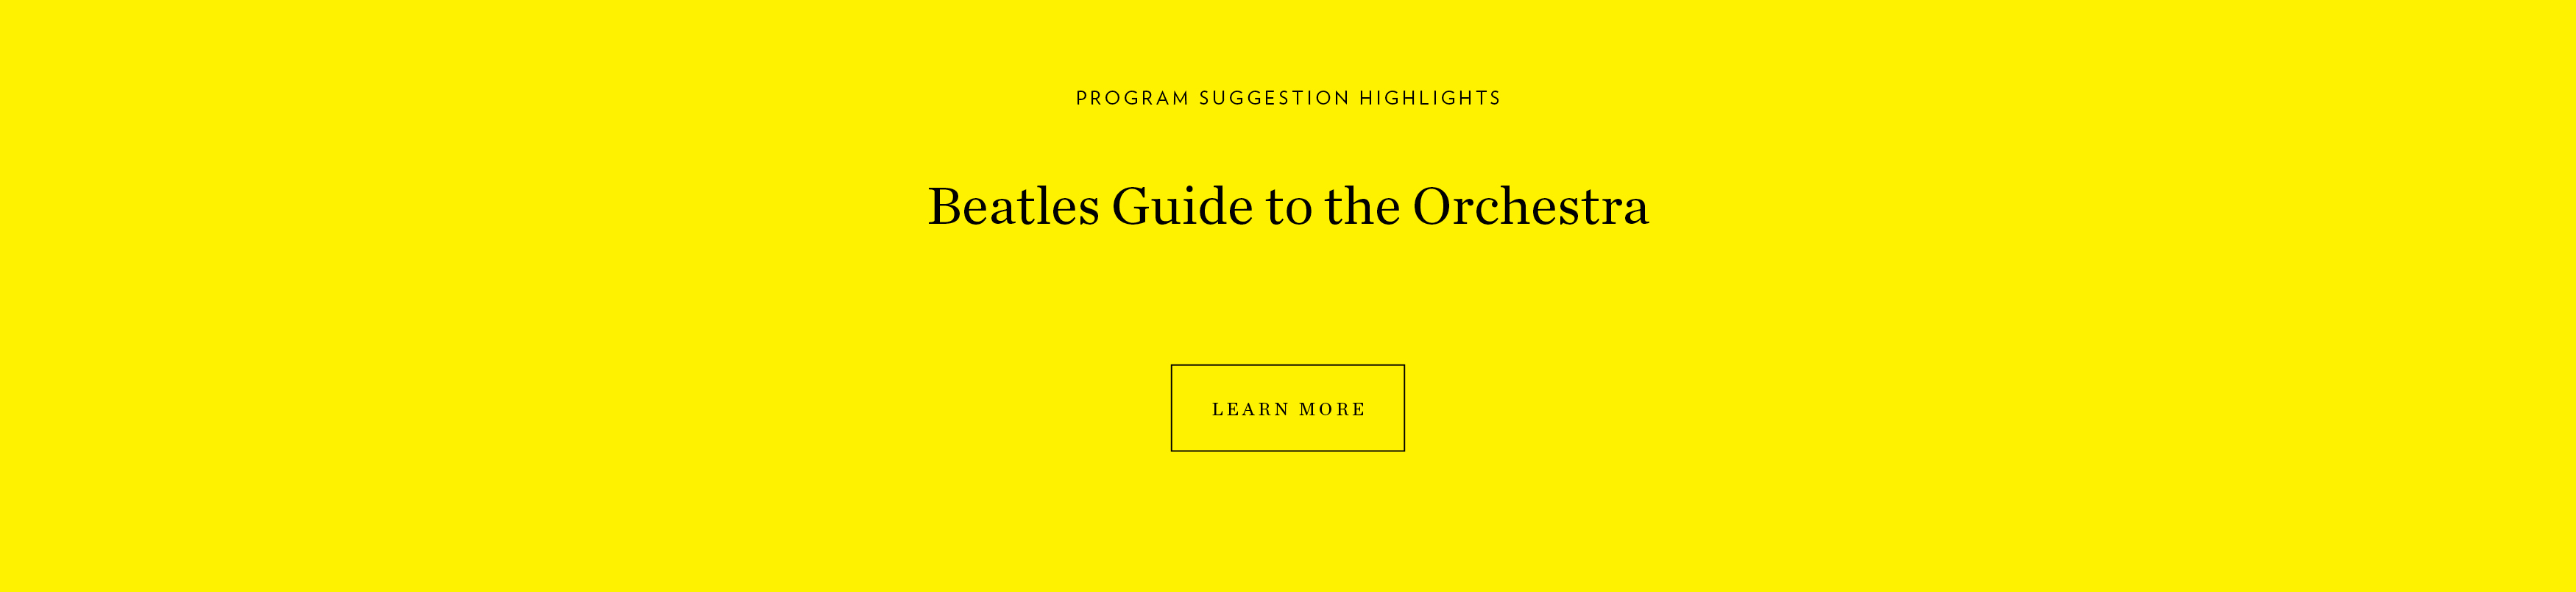 beatles-guide-to-the-orchestra-tnv